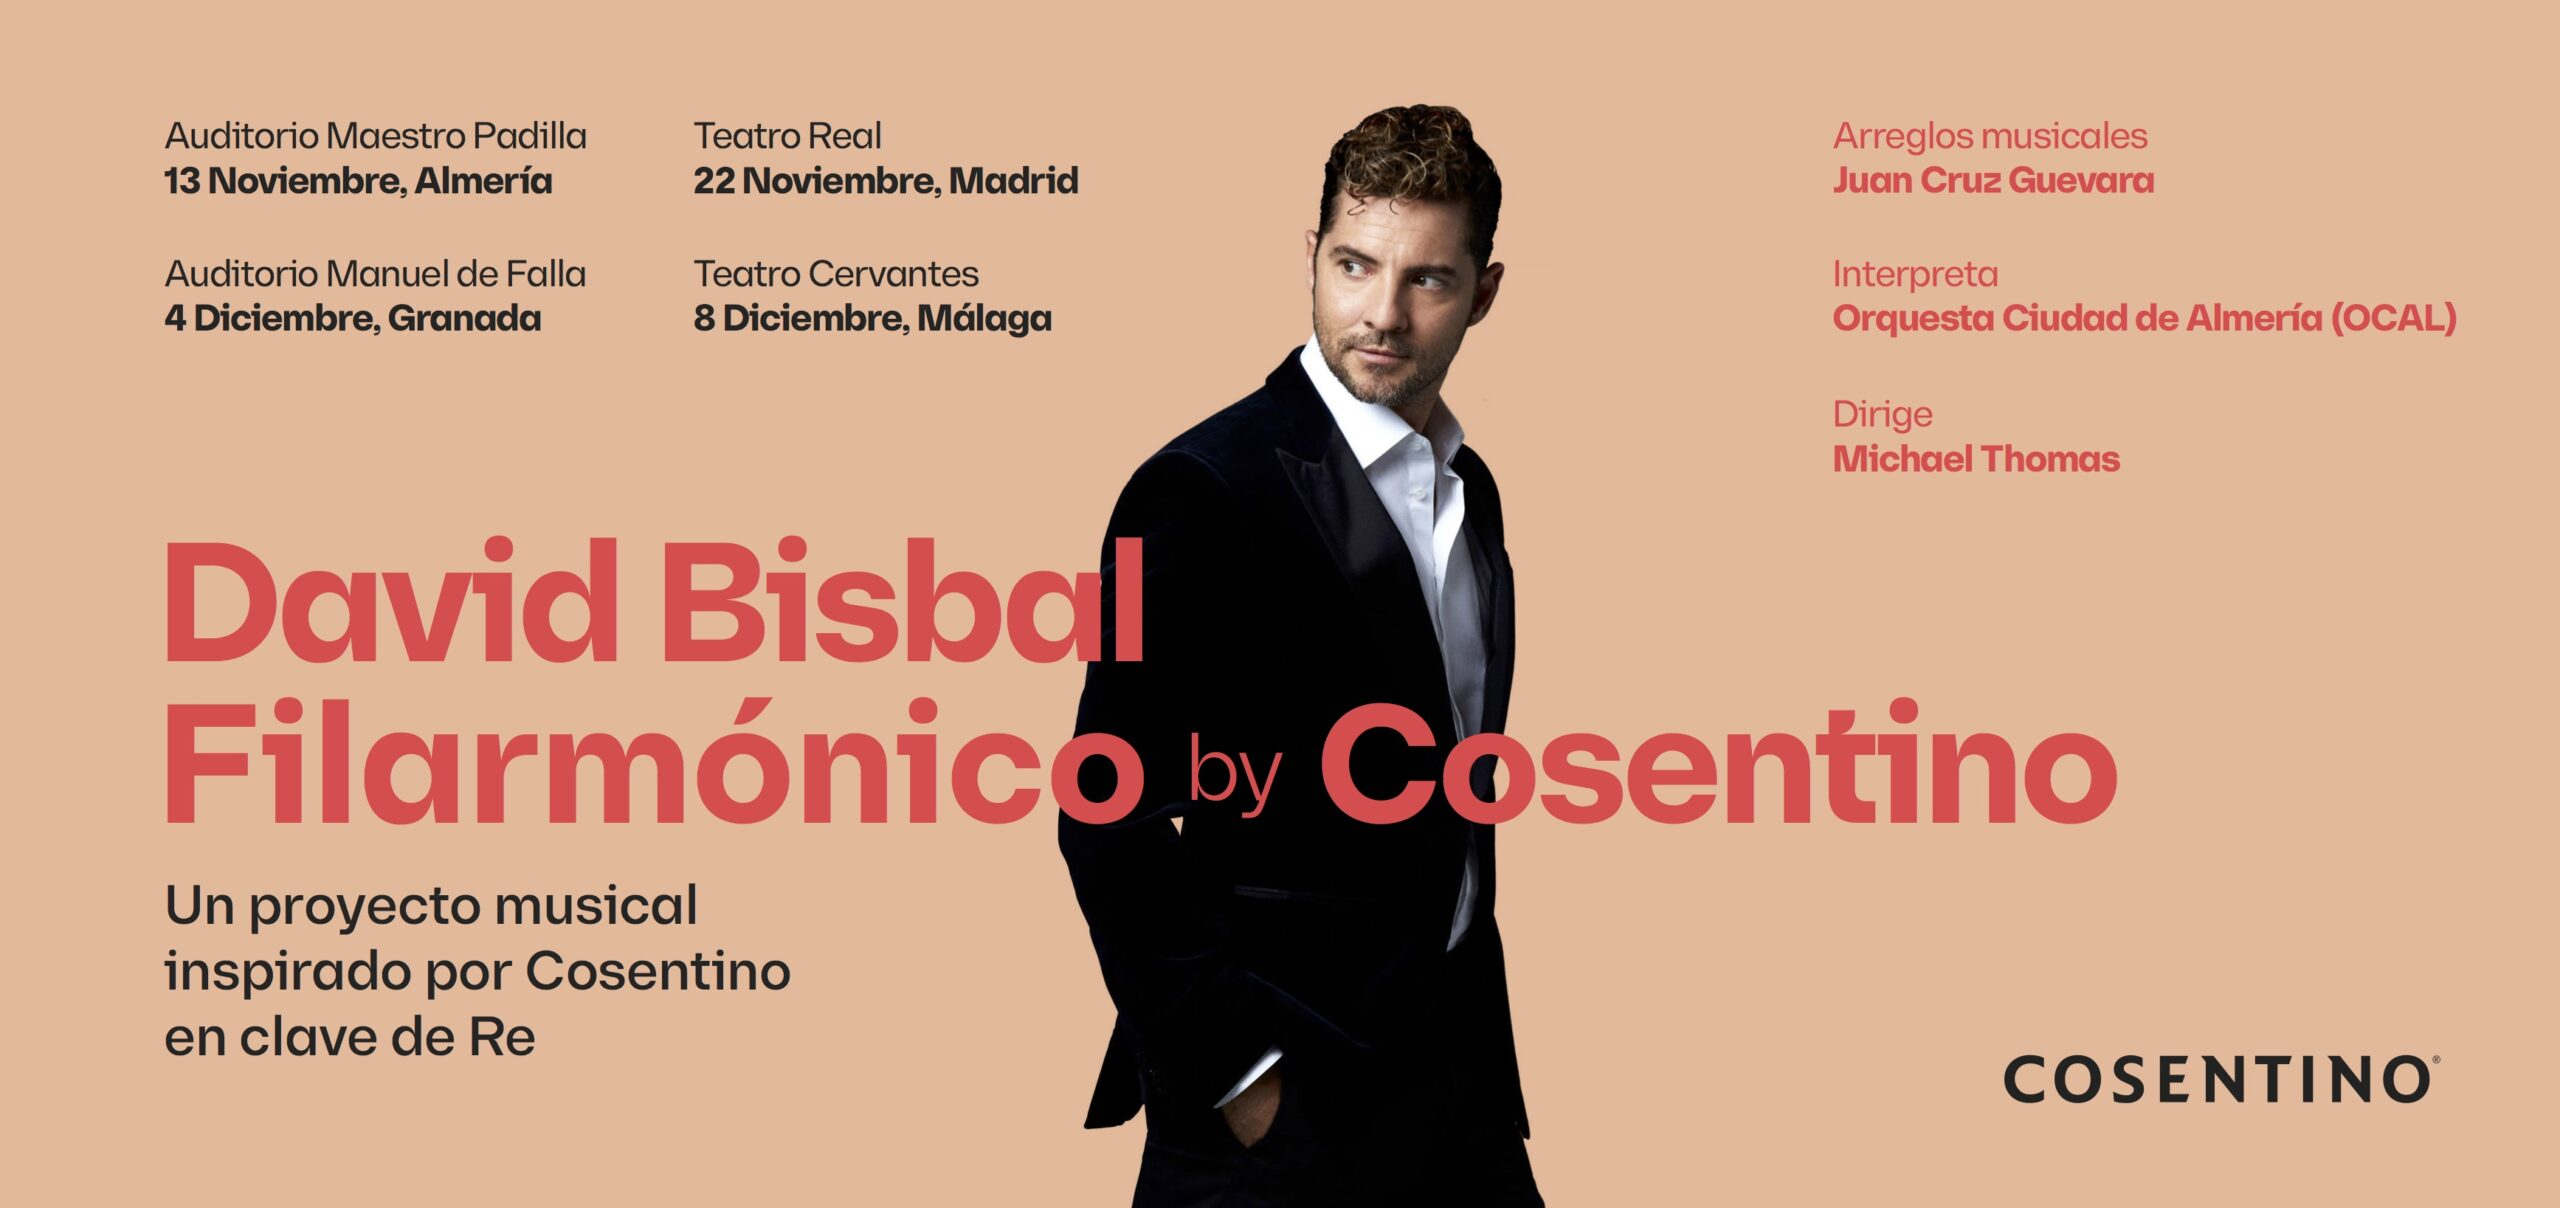 Image of cartel DBFbyCosentino scaled in Cosentino and David Bisbal present an exclusive series of concerts - Cosentino